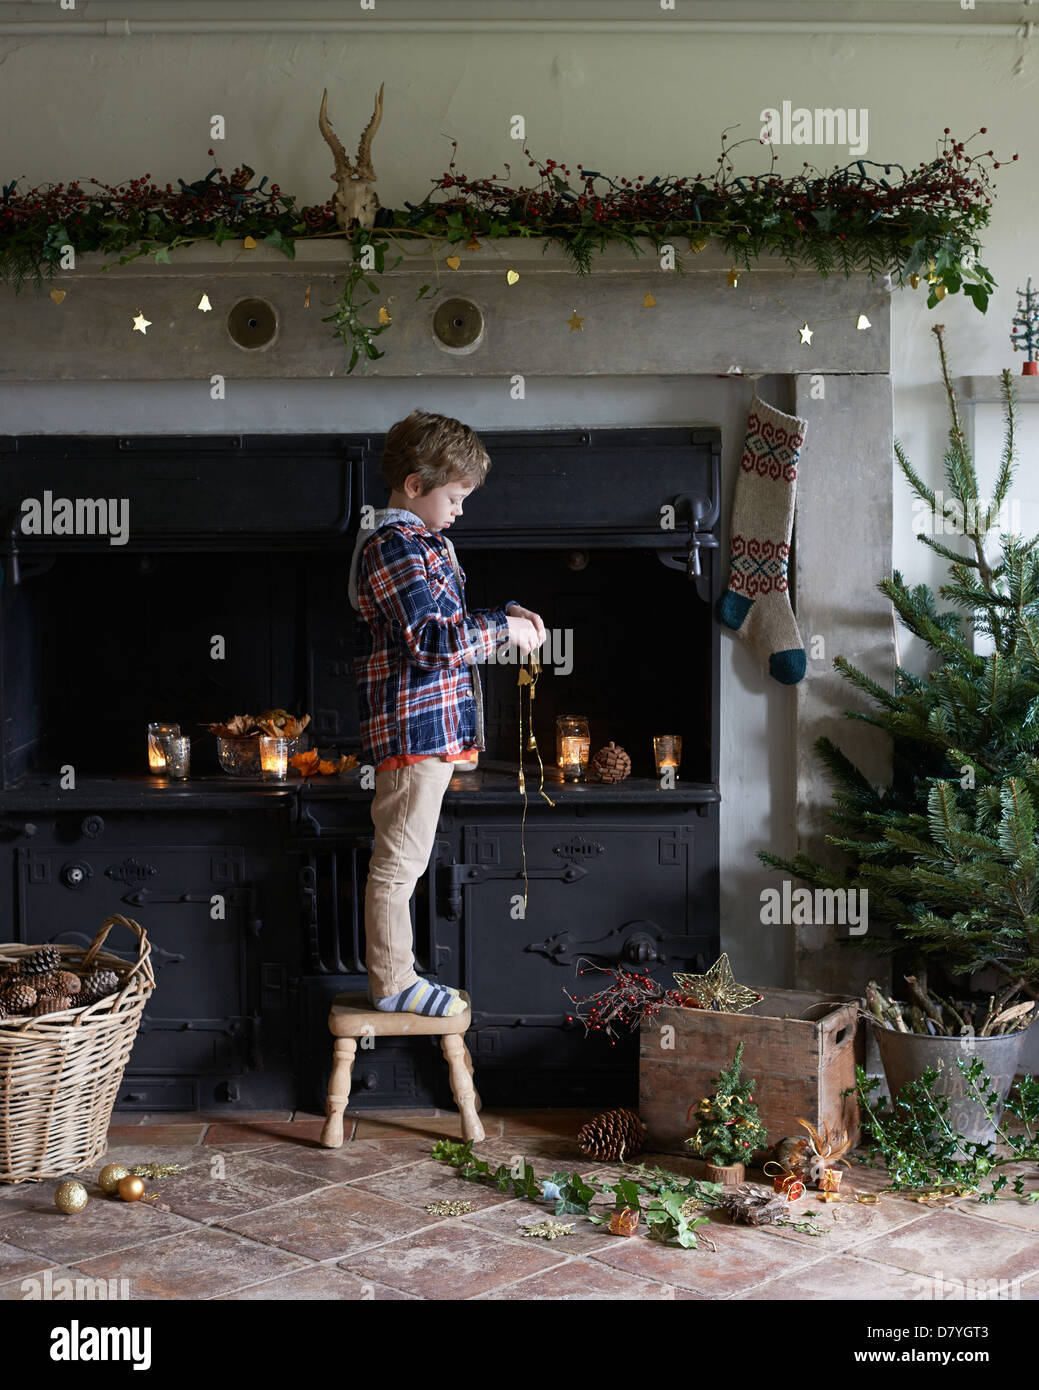 Boy decorating Christmas fireplace - Stock Image